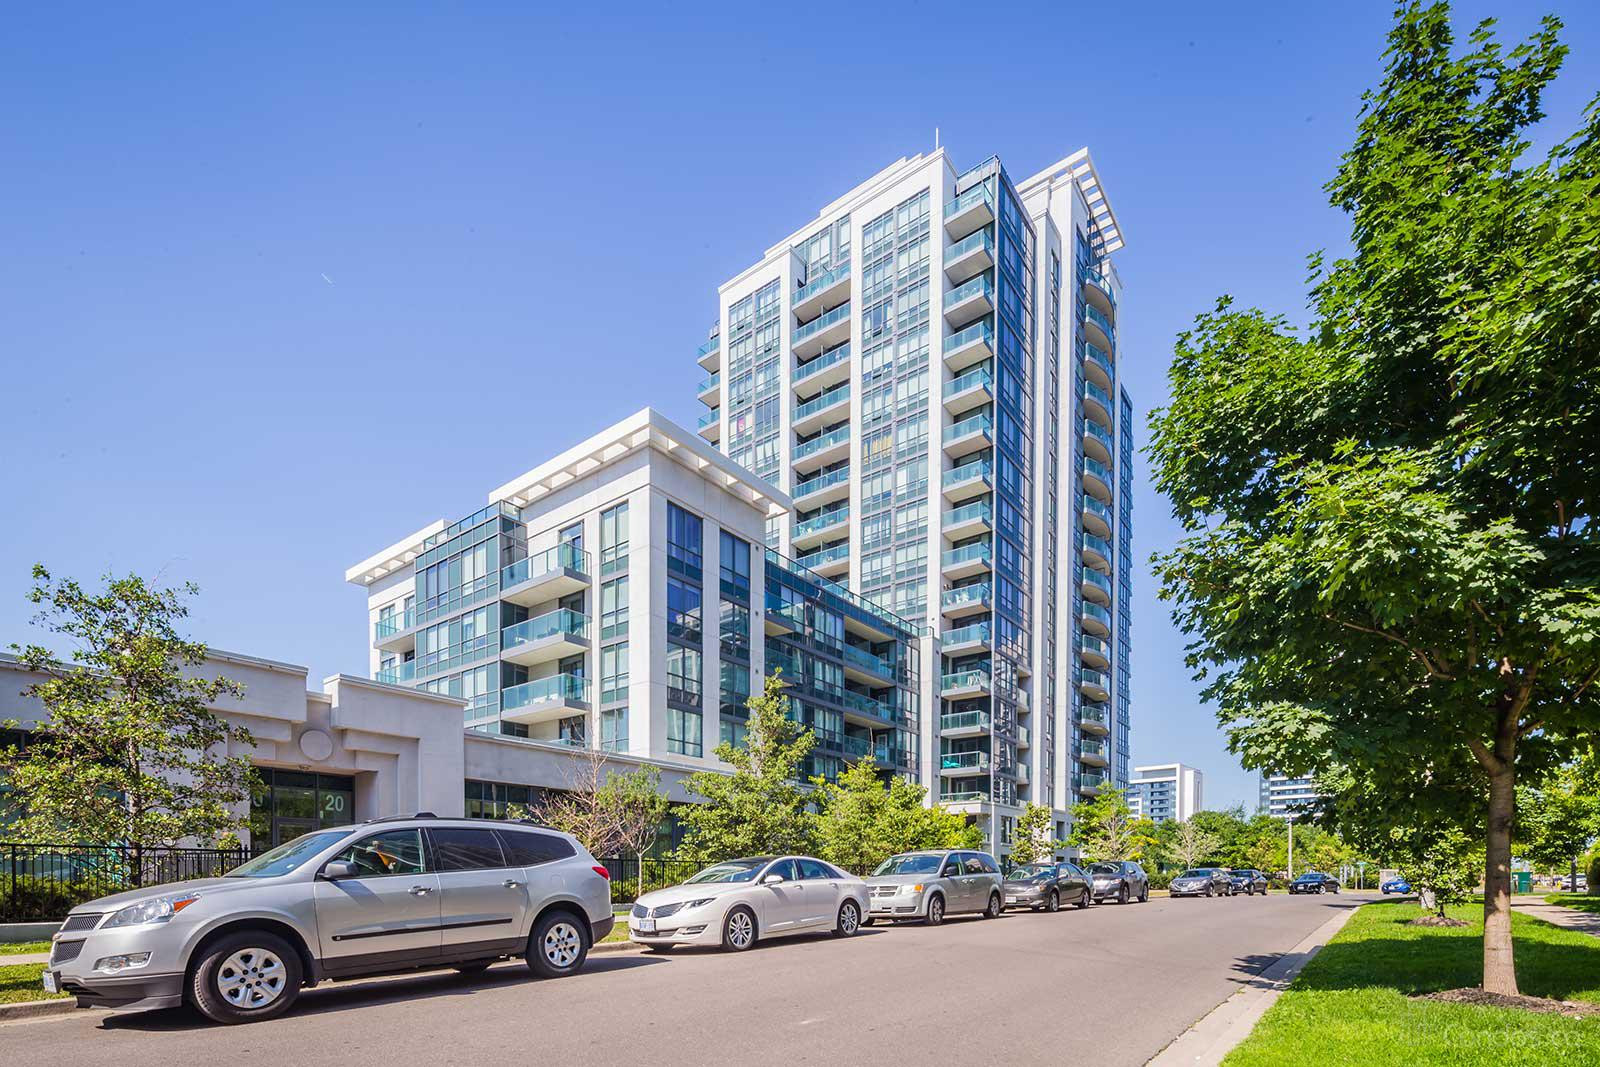 Central Park Condos and Towns at 80 N Park Rd, Vaughan 1